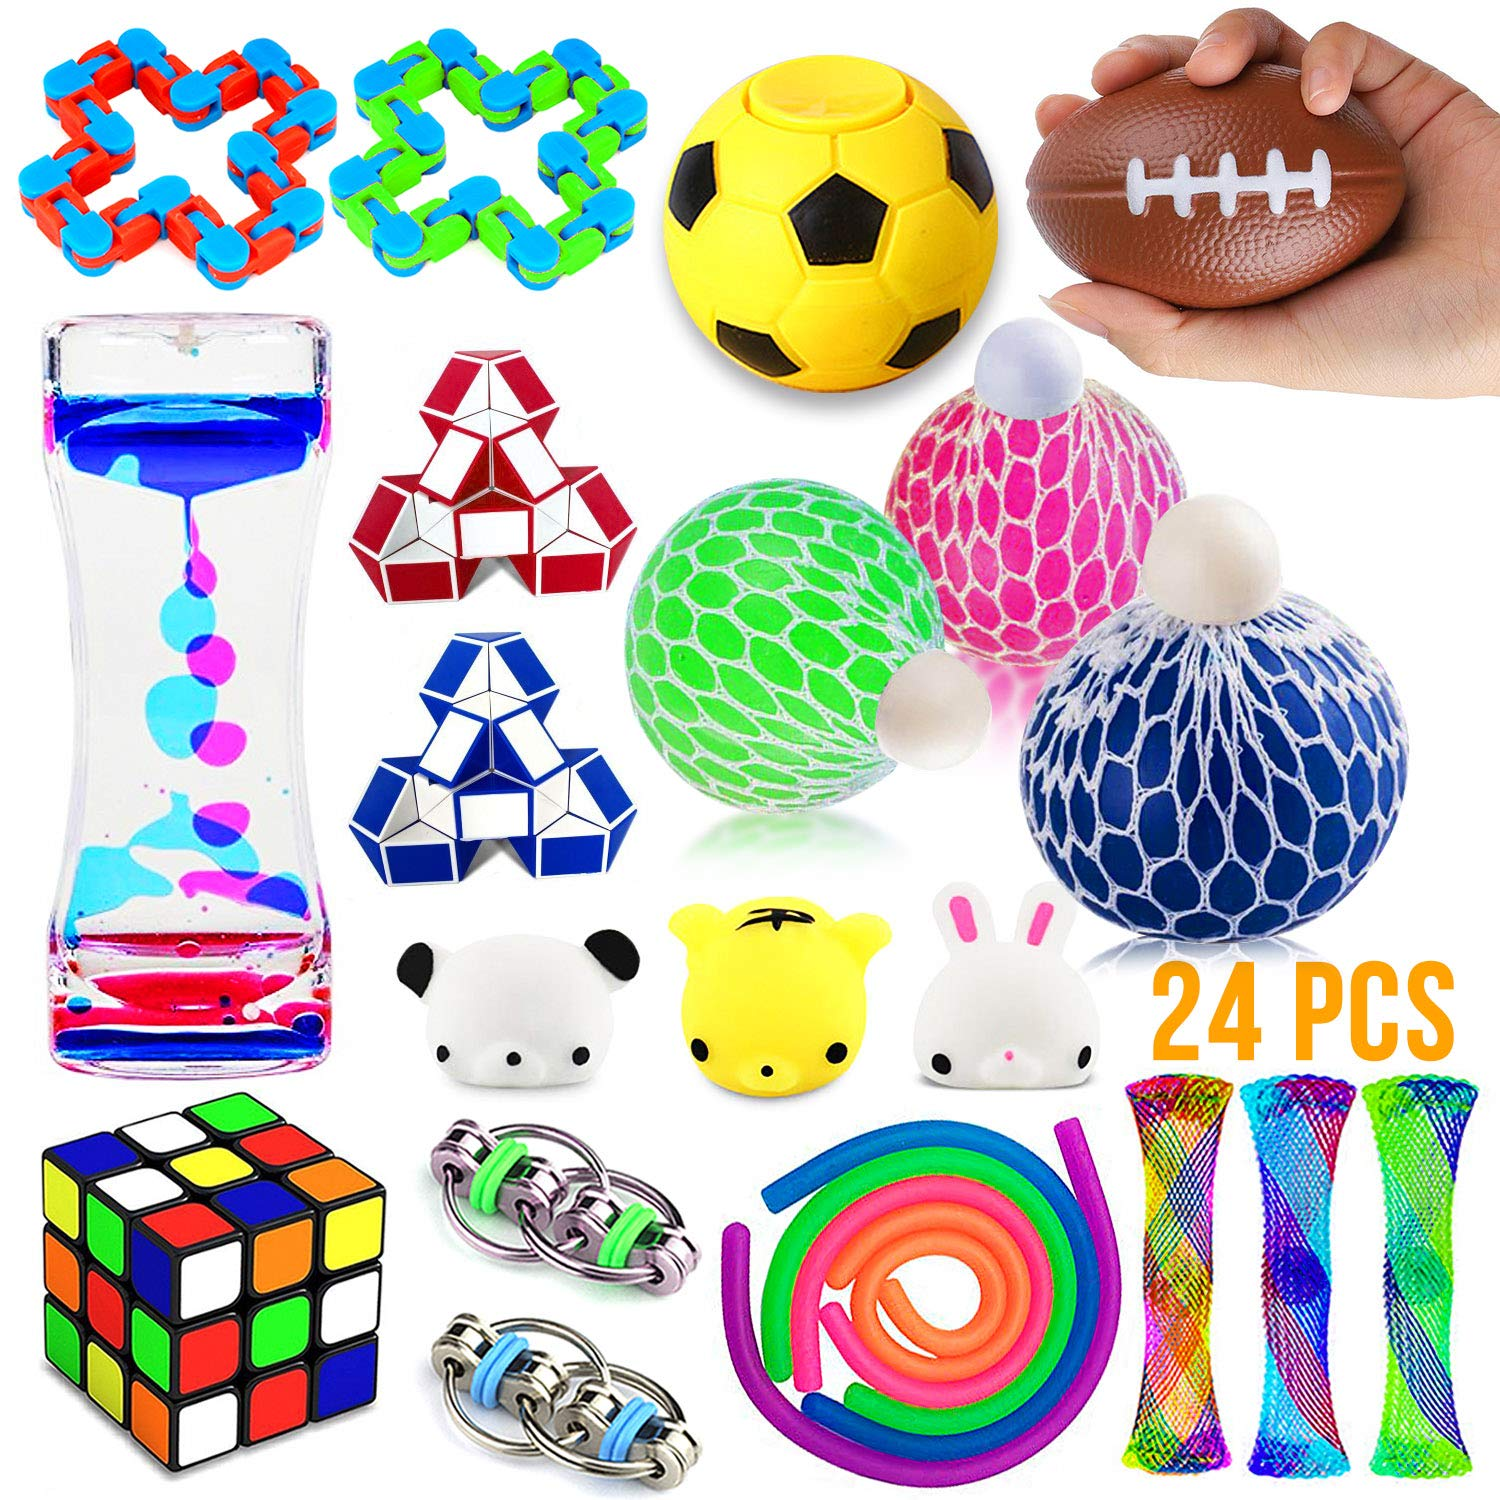 Fidget Toys Set, 24 Pack Sensory Tools Bundle for Stress Relief Hand Toys for Kids and Adults, Stretchy String/Liquid Motion/Cube/Twist Puzzle/Mesh Marble - Perfect for ADHD ADD Anxiety Autism by nobasco